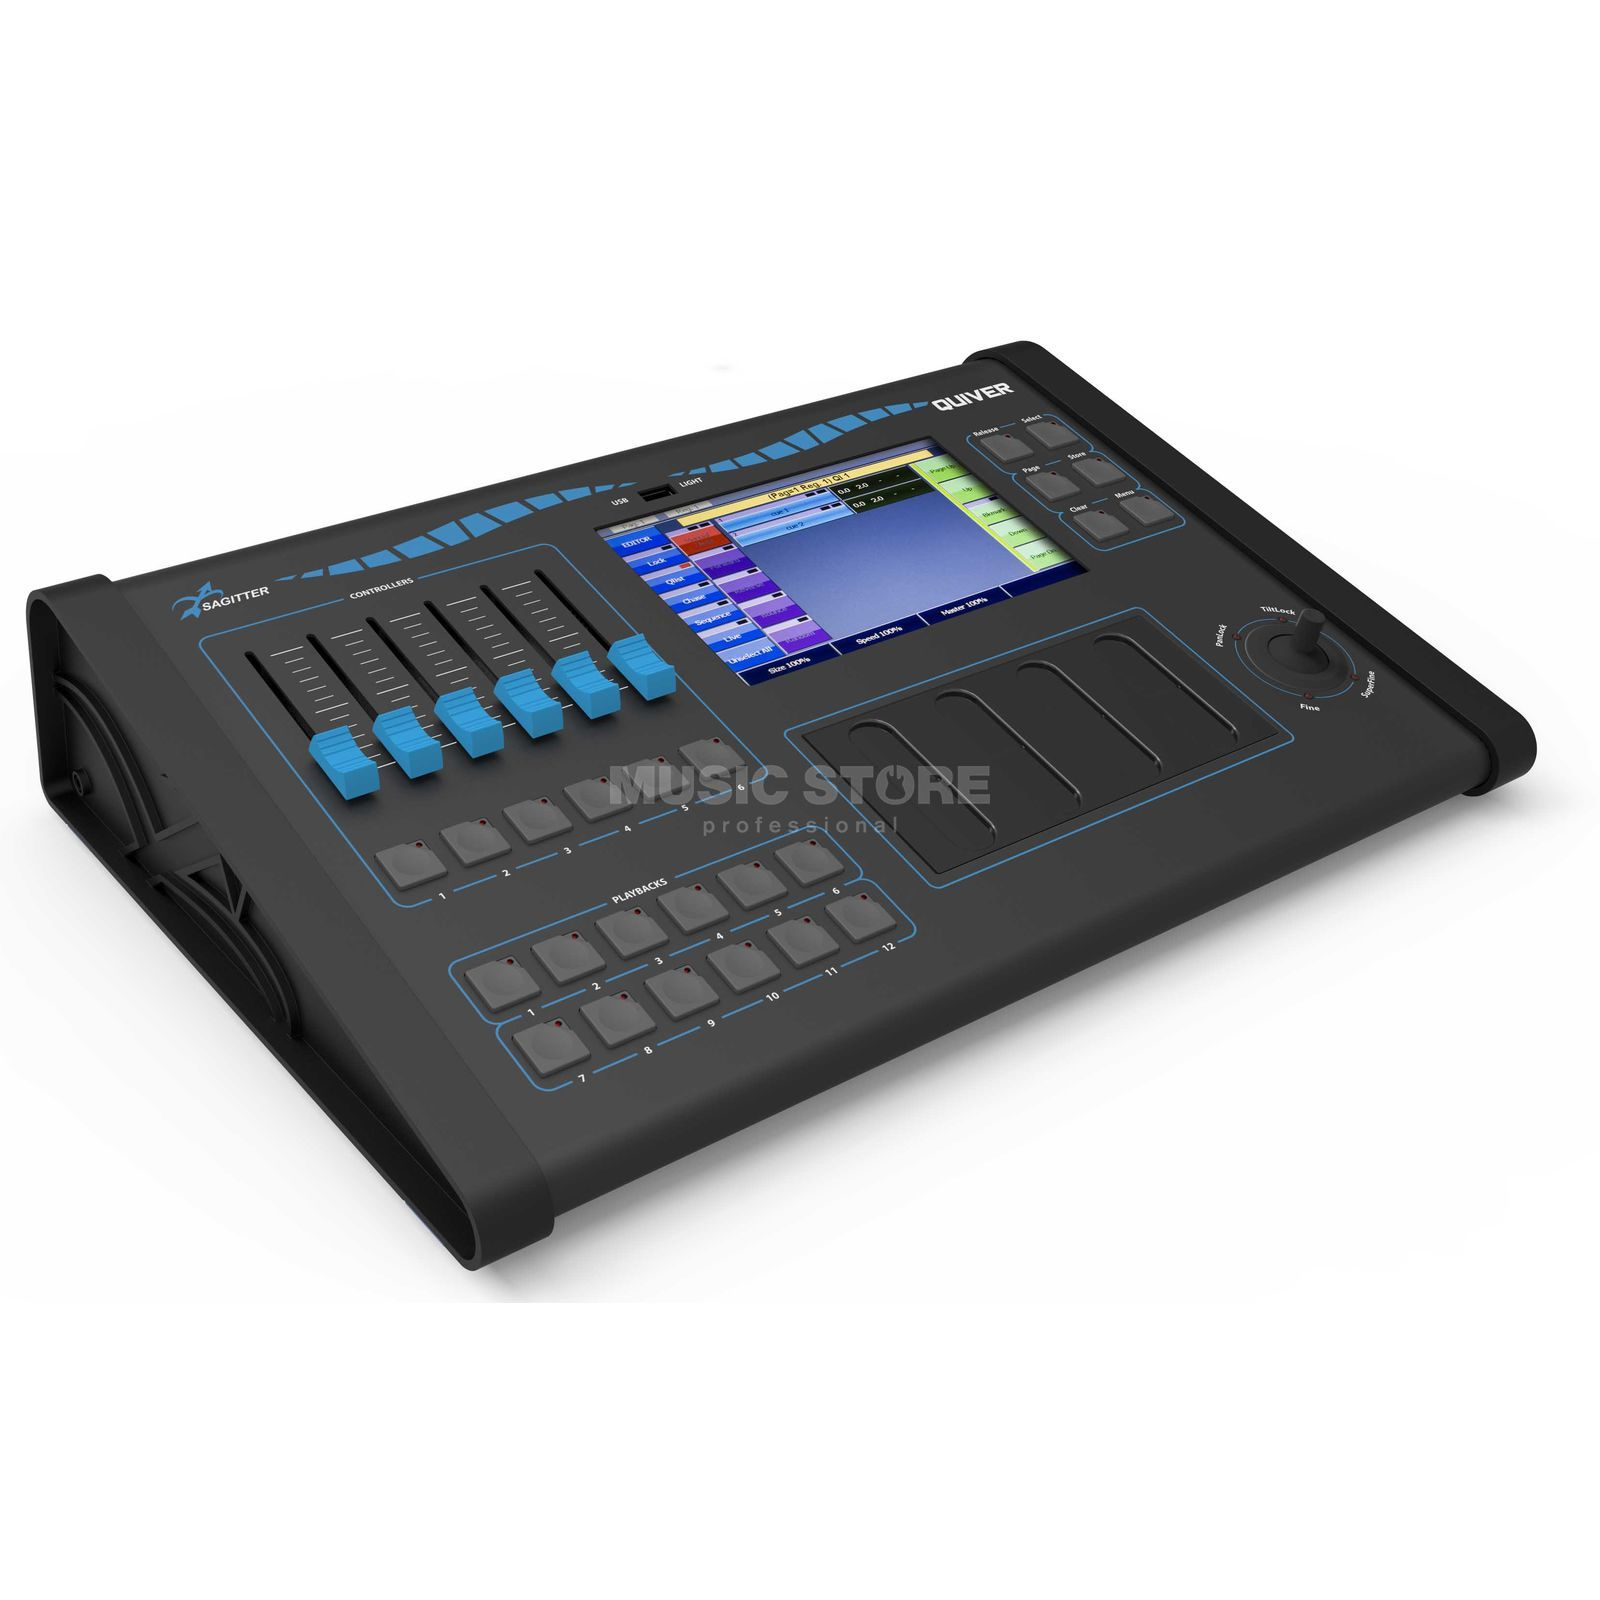 Sagitter Quiver DMX Controller 512 Channels / up to 1536 Zdjęcie produktu